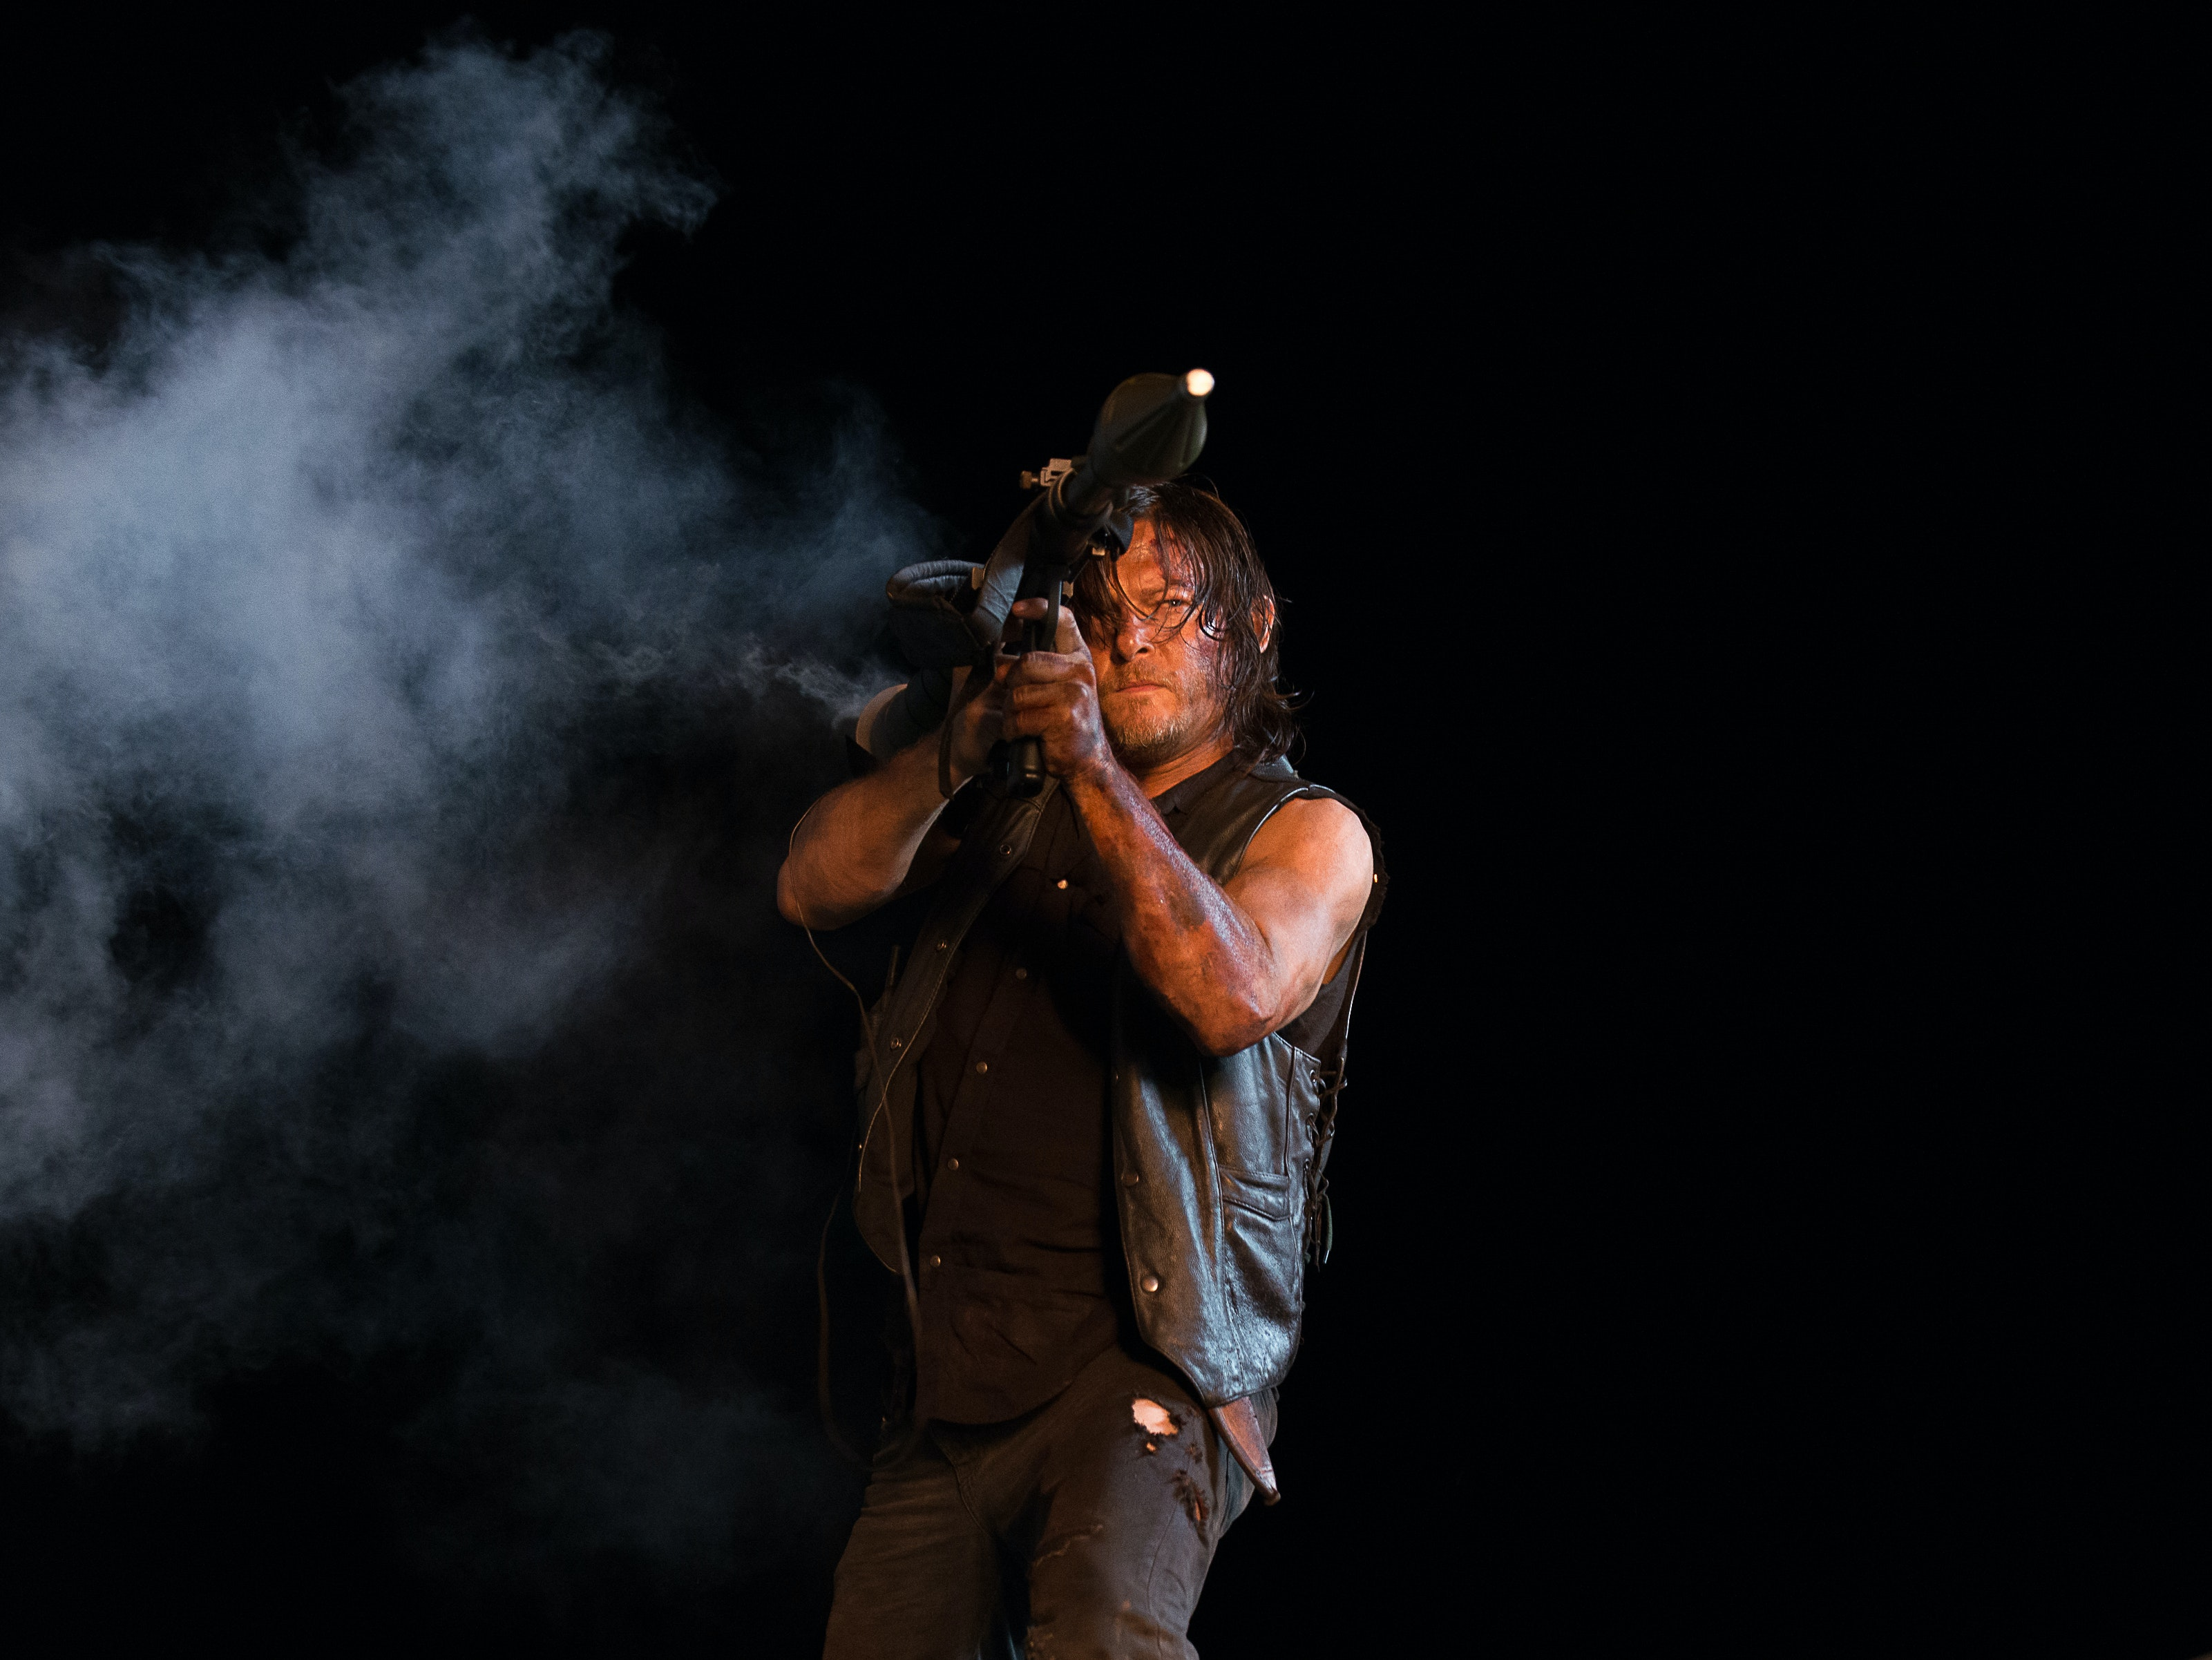 'The Walking Dead' Season 6 Return Gives Power Back to the Living